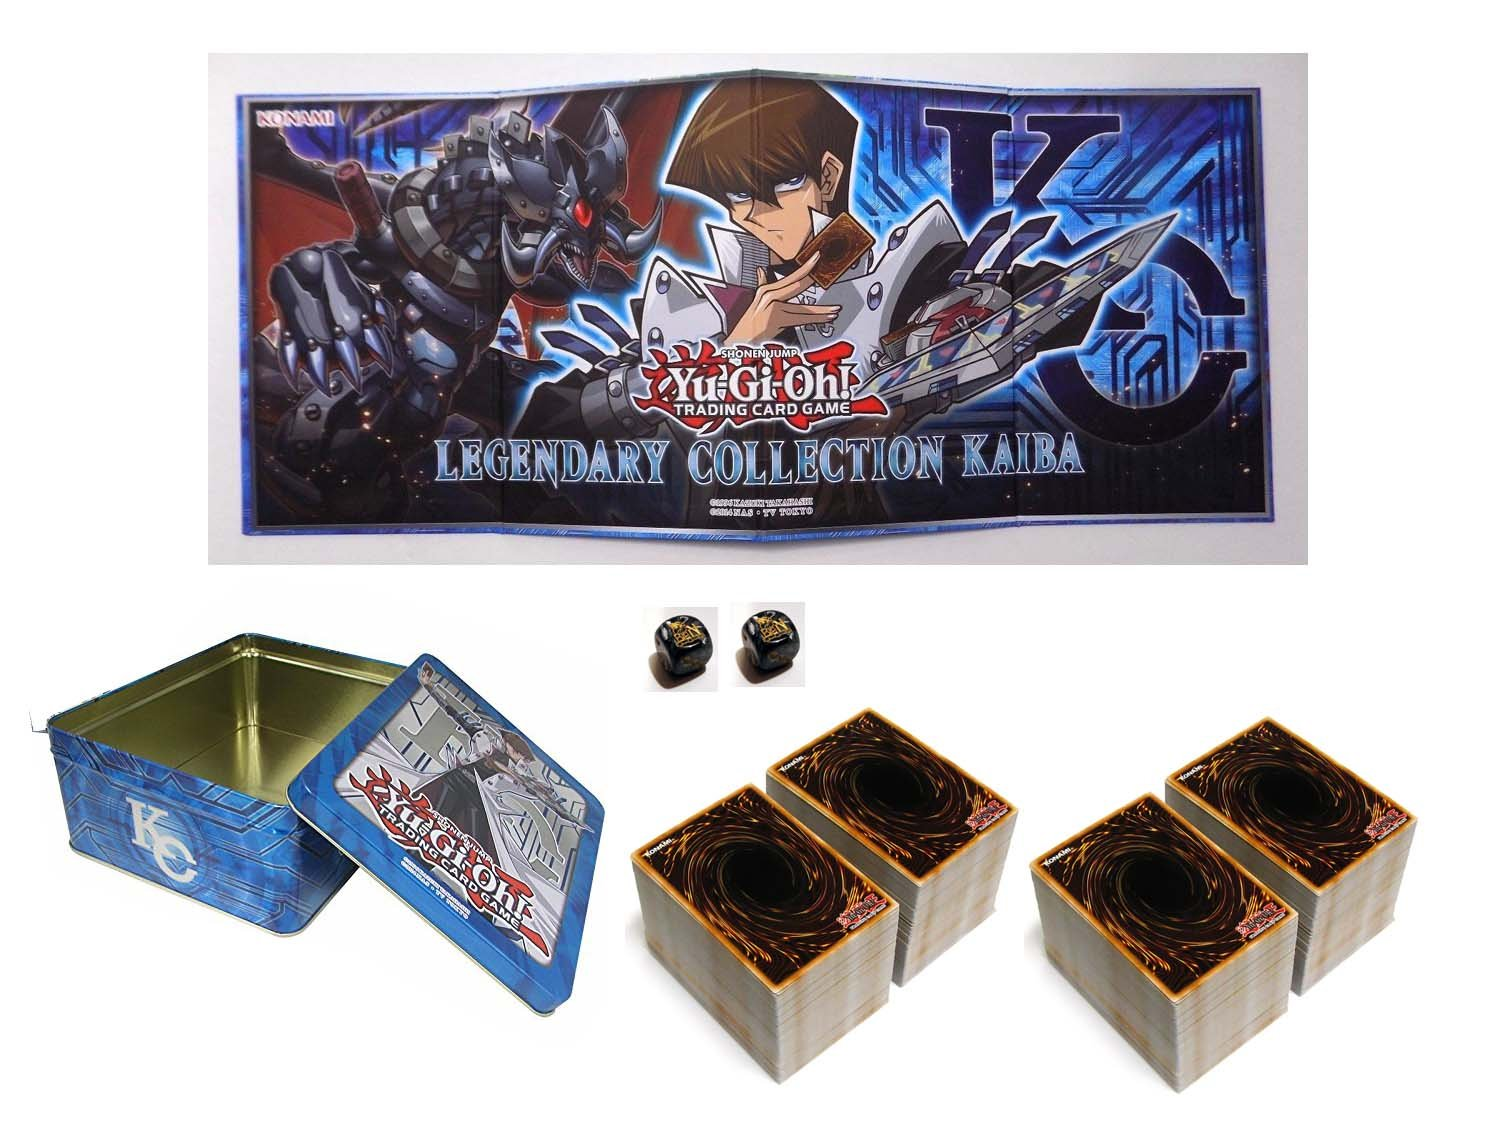 2000 Assorted Yugioh Cards! with 50 Rares and 50 Holos! 1 Yugioh Gameboard! Includes 1 Yugioh Empty Tin by Yu-Gi-Oh! (Image #1)